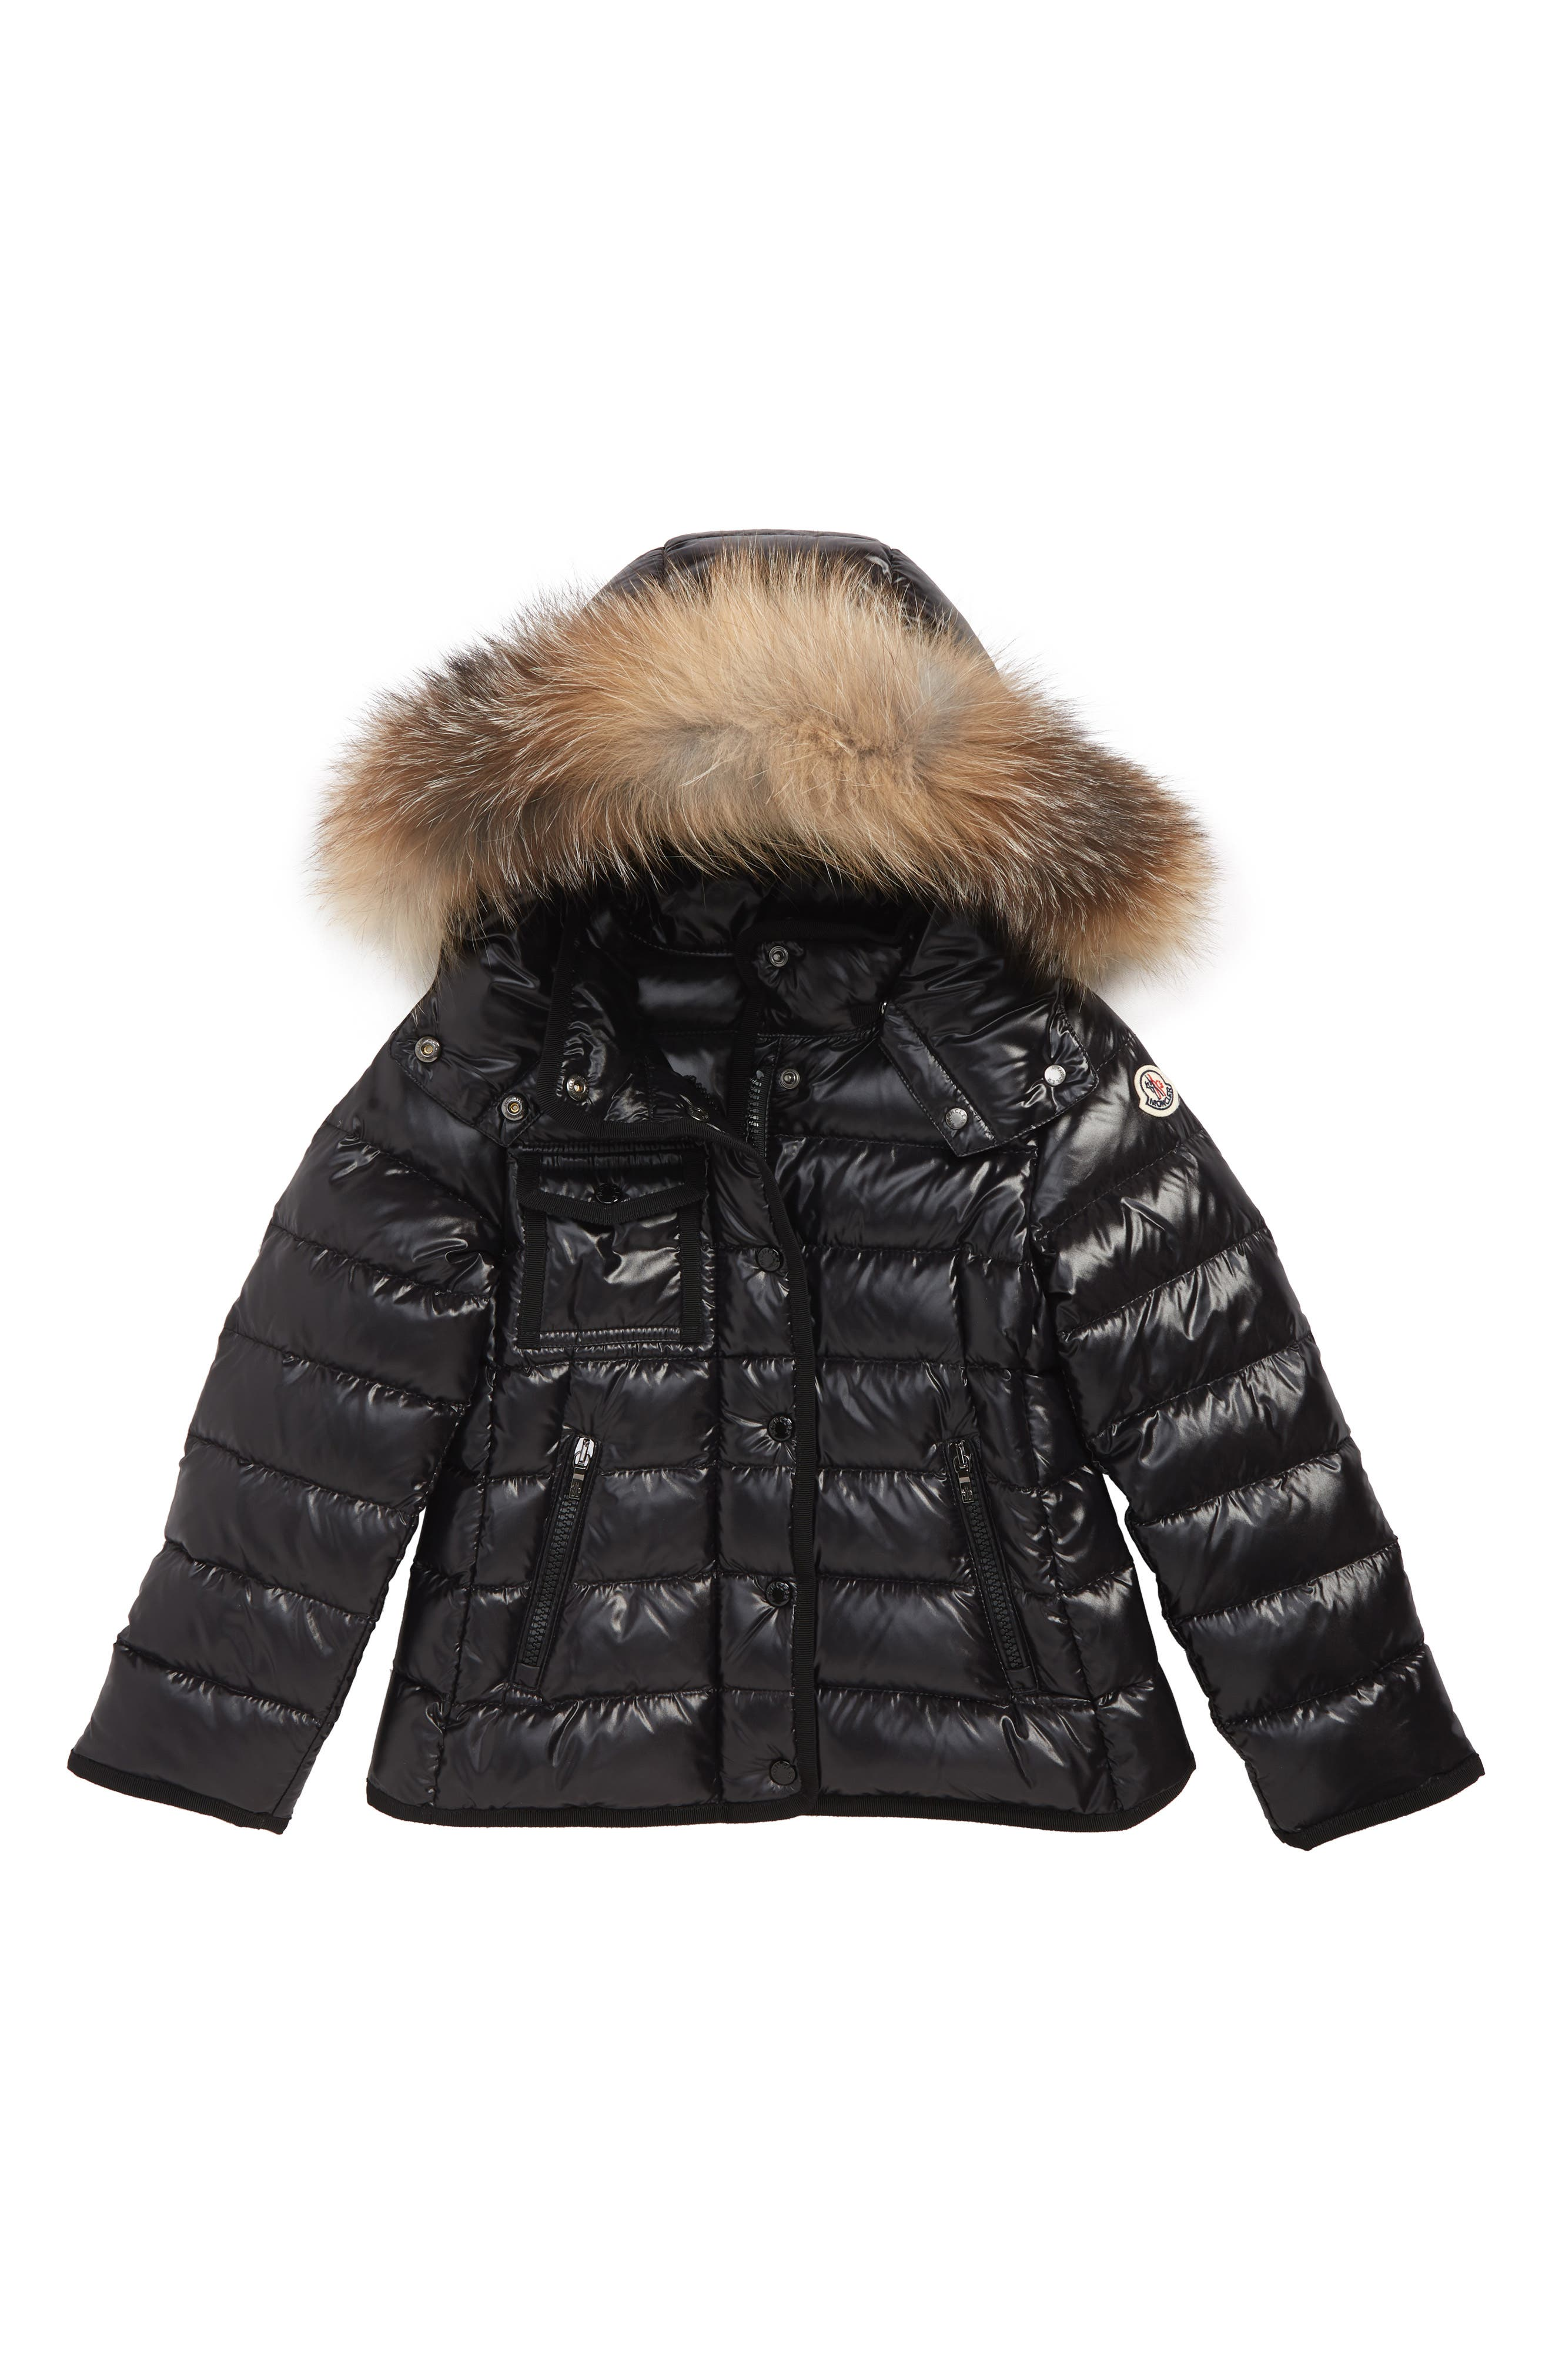 Armoise Hooded Down Jacket with Genuine Fox Fur Trim,                             Main thumbnail 1, color,                             BLACK